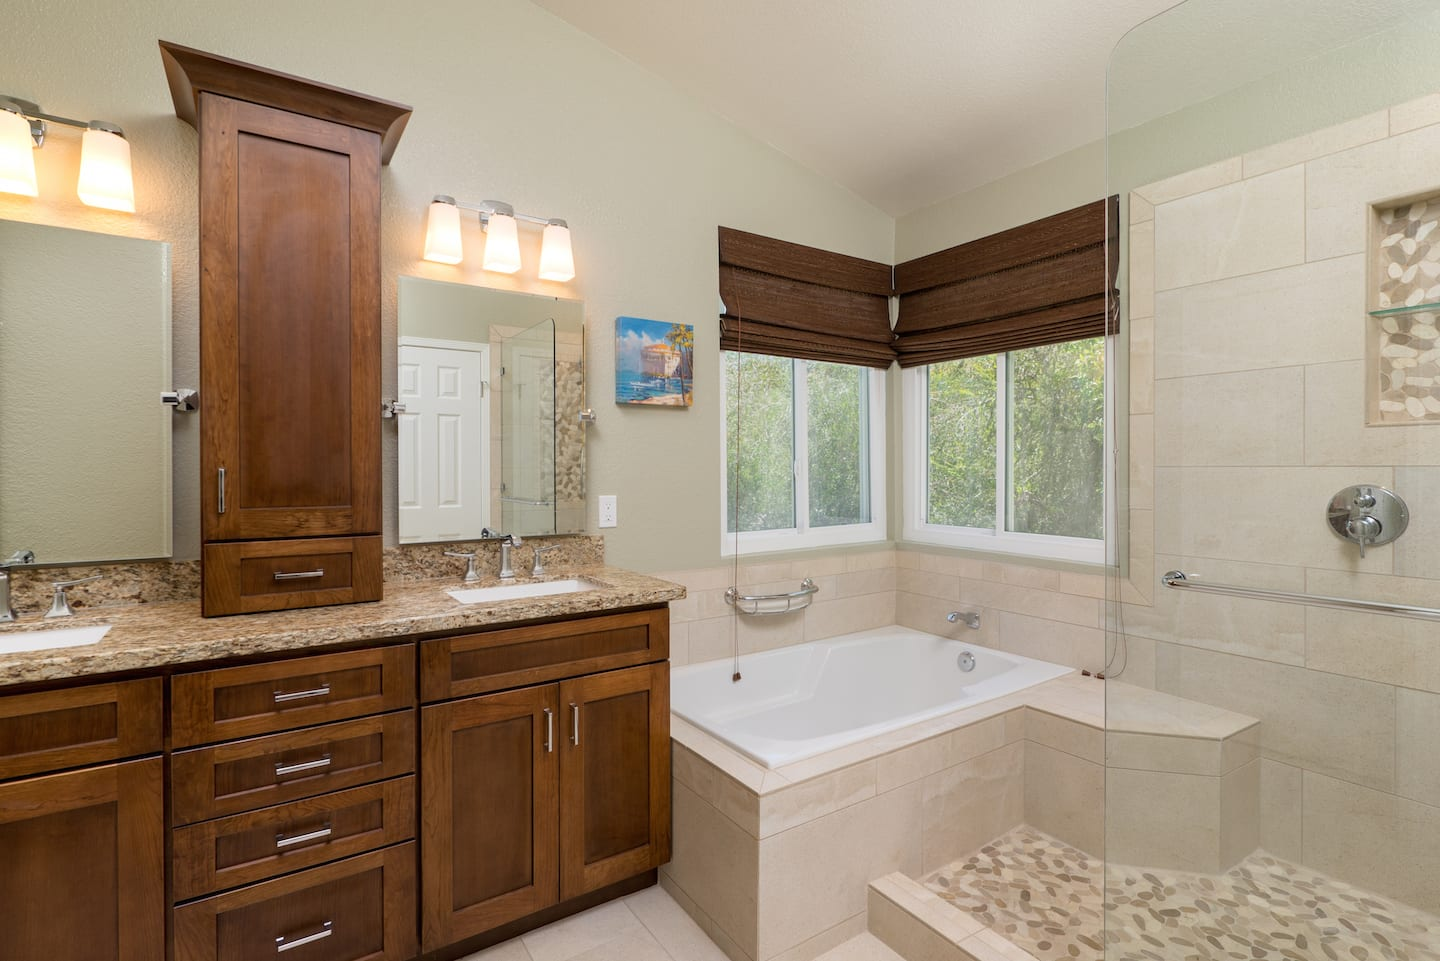 Bathroom Remodel Asheville Nc bathroom remodeling - planning and hiring | angie's list